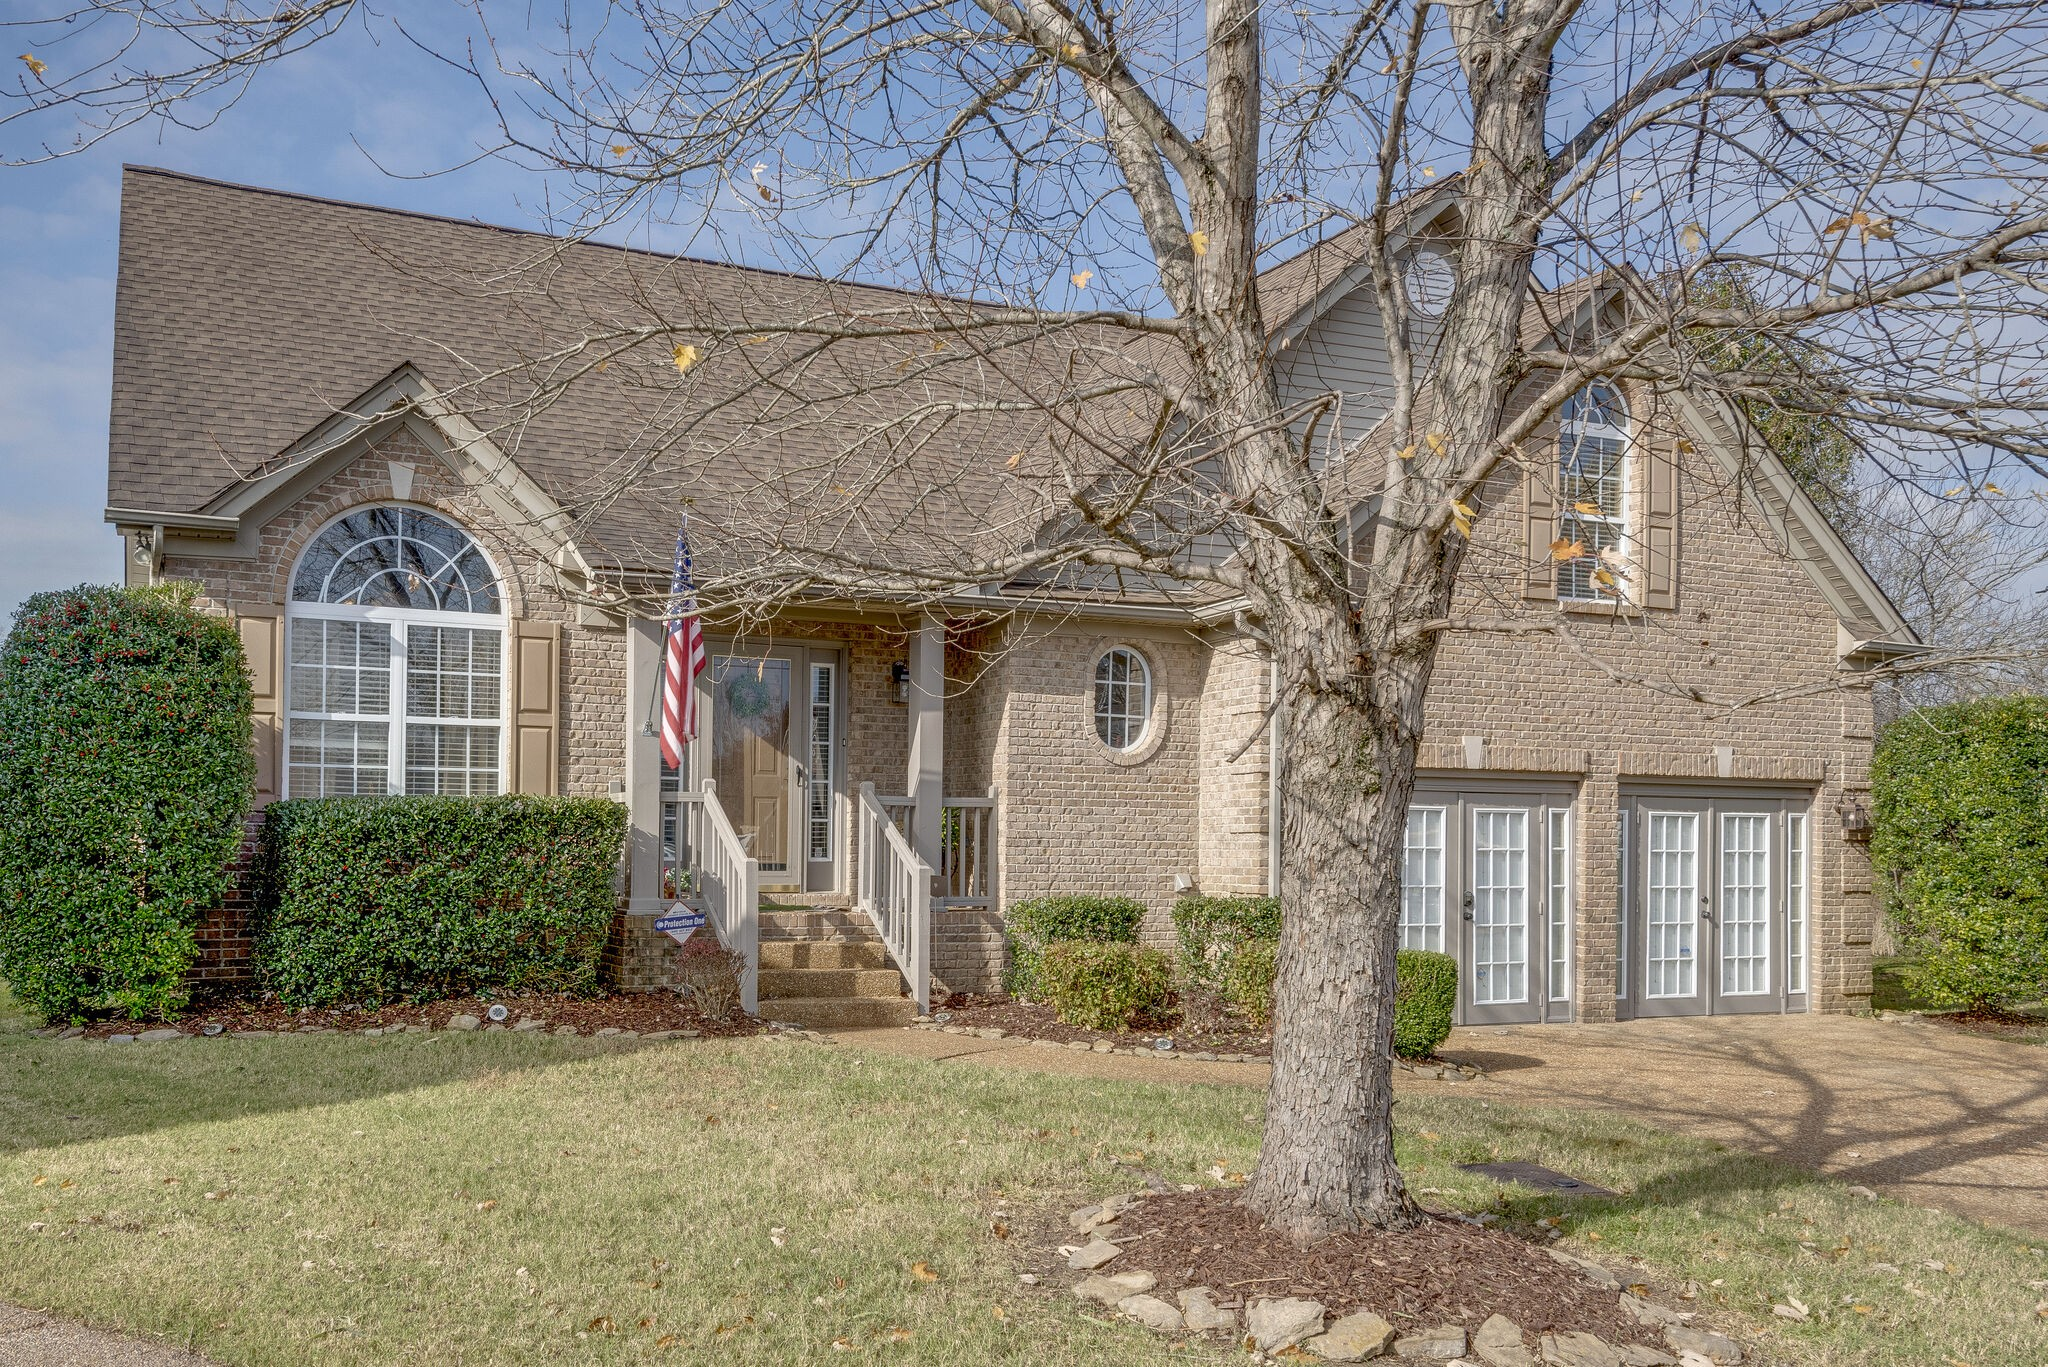 Great home on a cul-de-sac. Walking distance to shopping, and access to Green Way for walking, biking, or fishing. Gourmet kitchen with beautiful tile backsplash, ss appliances and granite countertops. Home theater room, Bonus room, fenced in back yard.